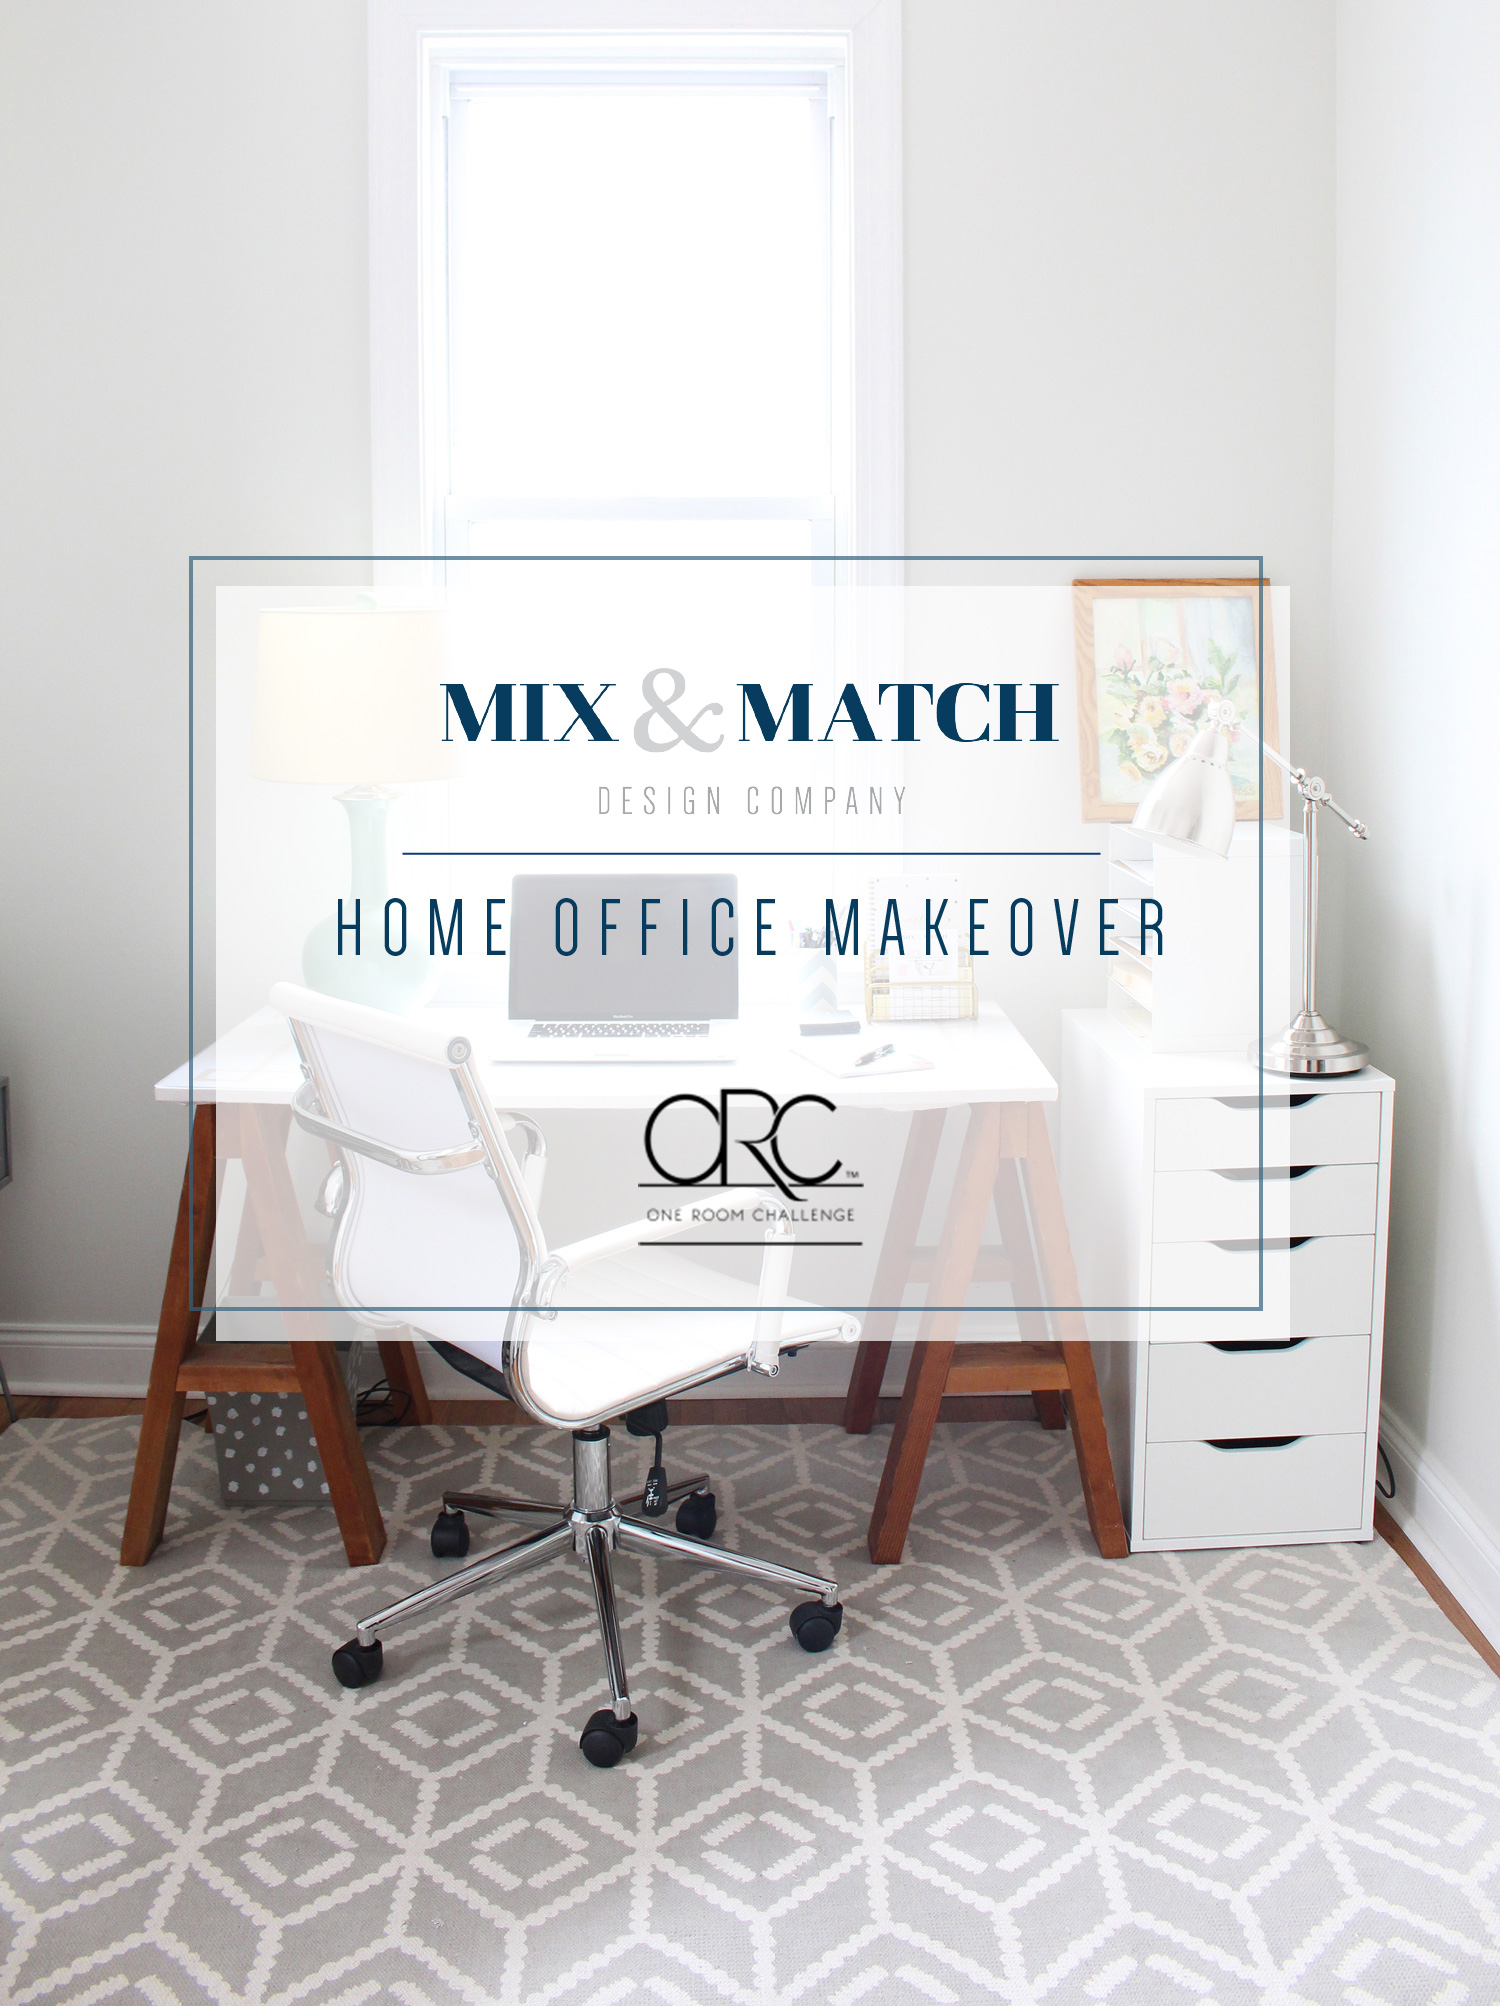 One Room Challenge - Mix & Match Design Company